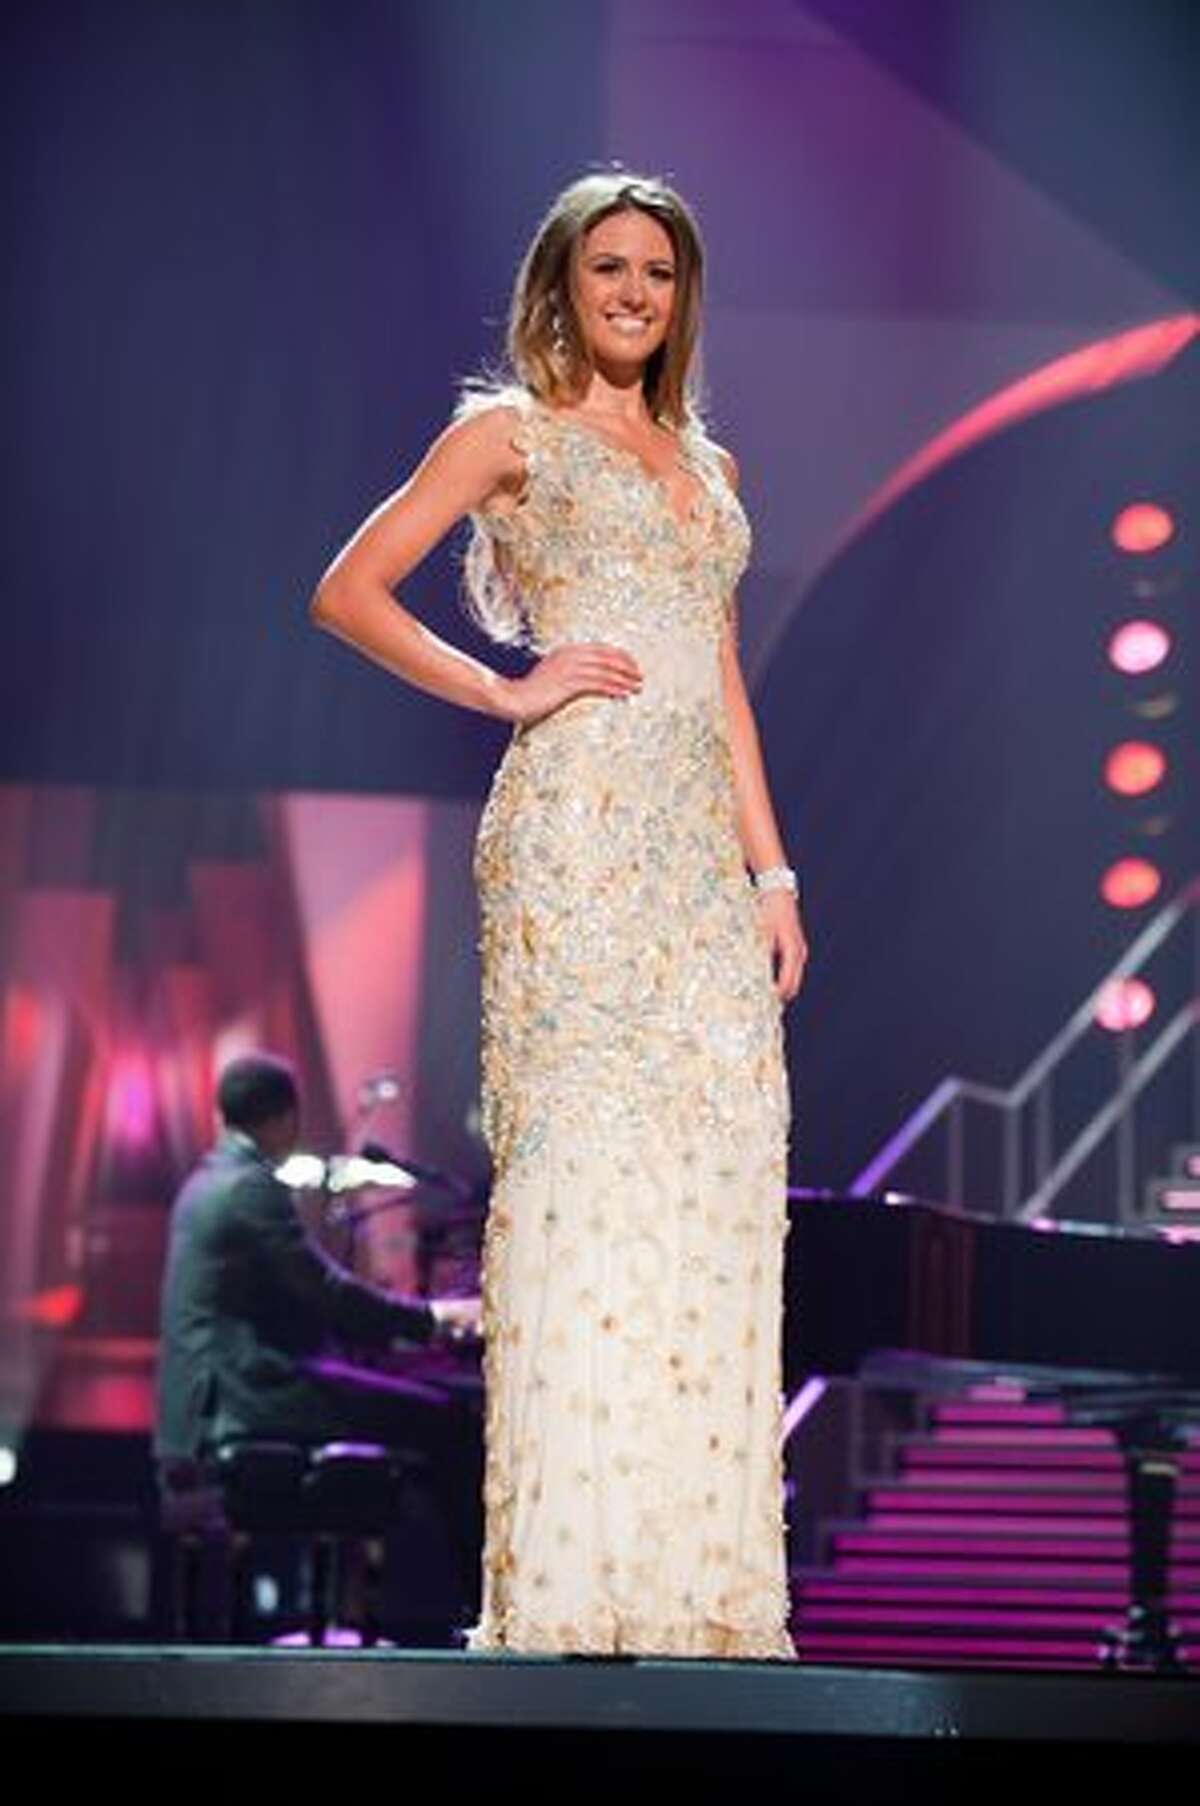 The 10 remaining contestants competed in evening gowns of their choice while musician John Legend performed. This is Jesinta Campbell, Miss Australia 2010, who scored 8.841 and advanced to the final five.